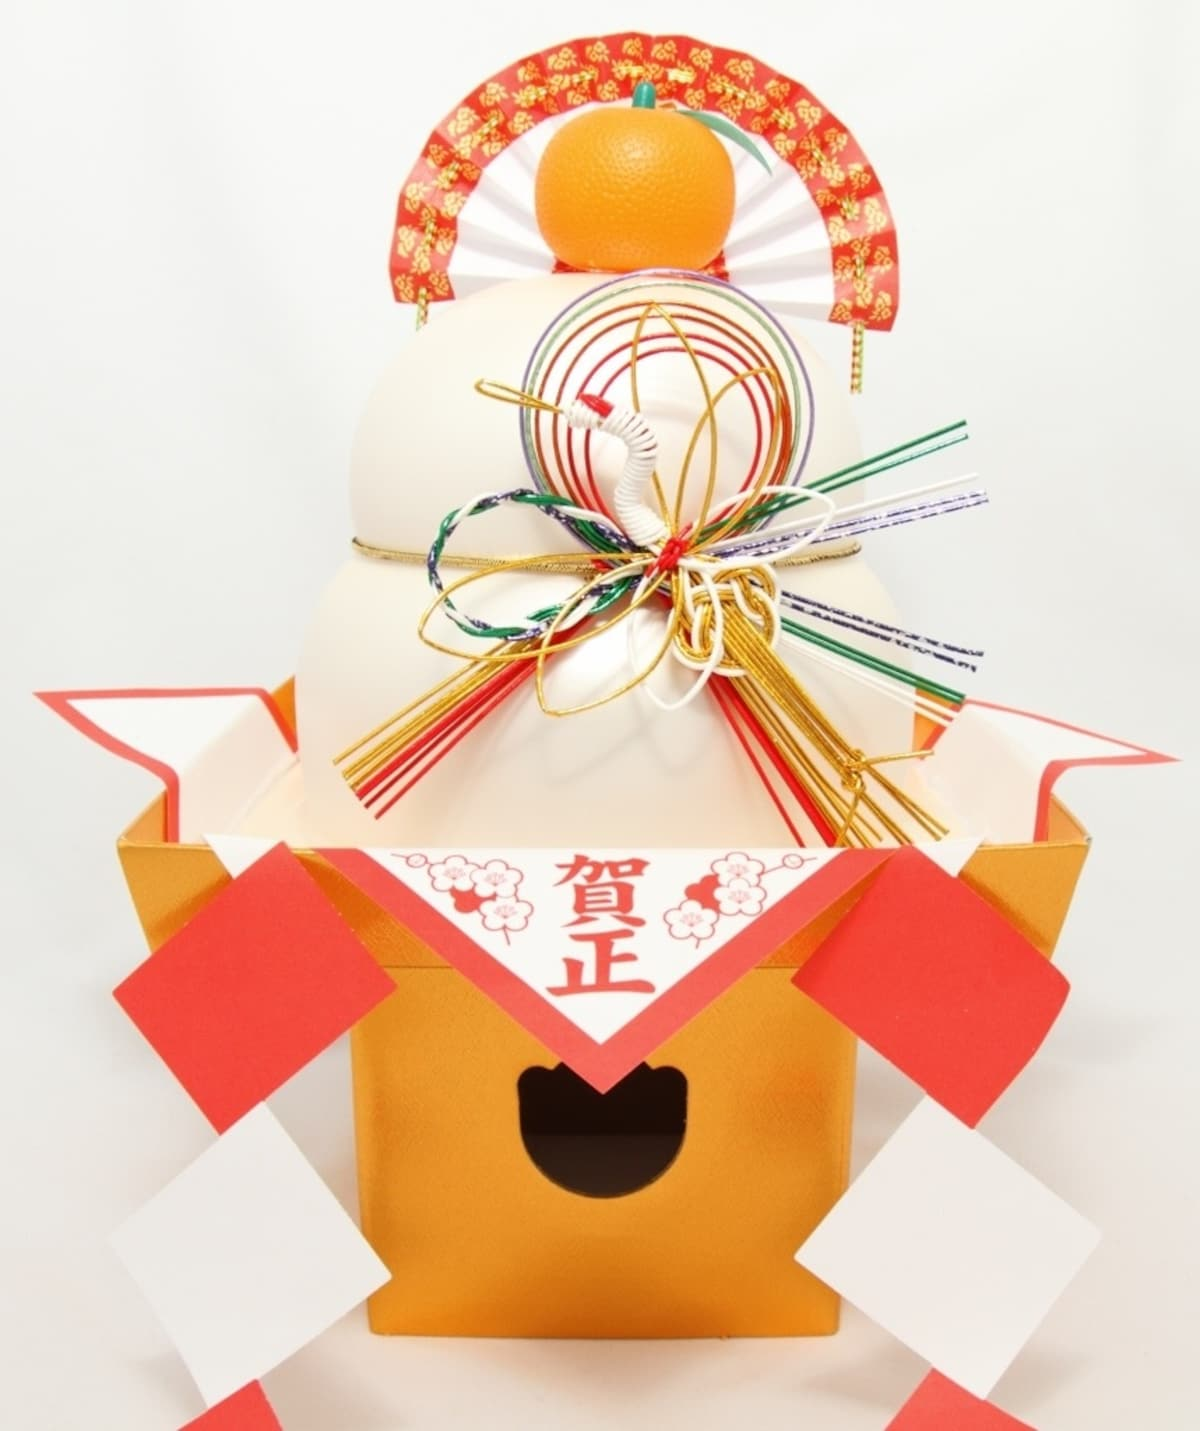 8. The New Year holiday was originally a festival of worship for 'toshigami'